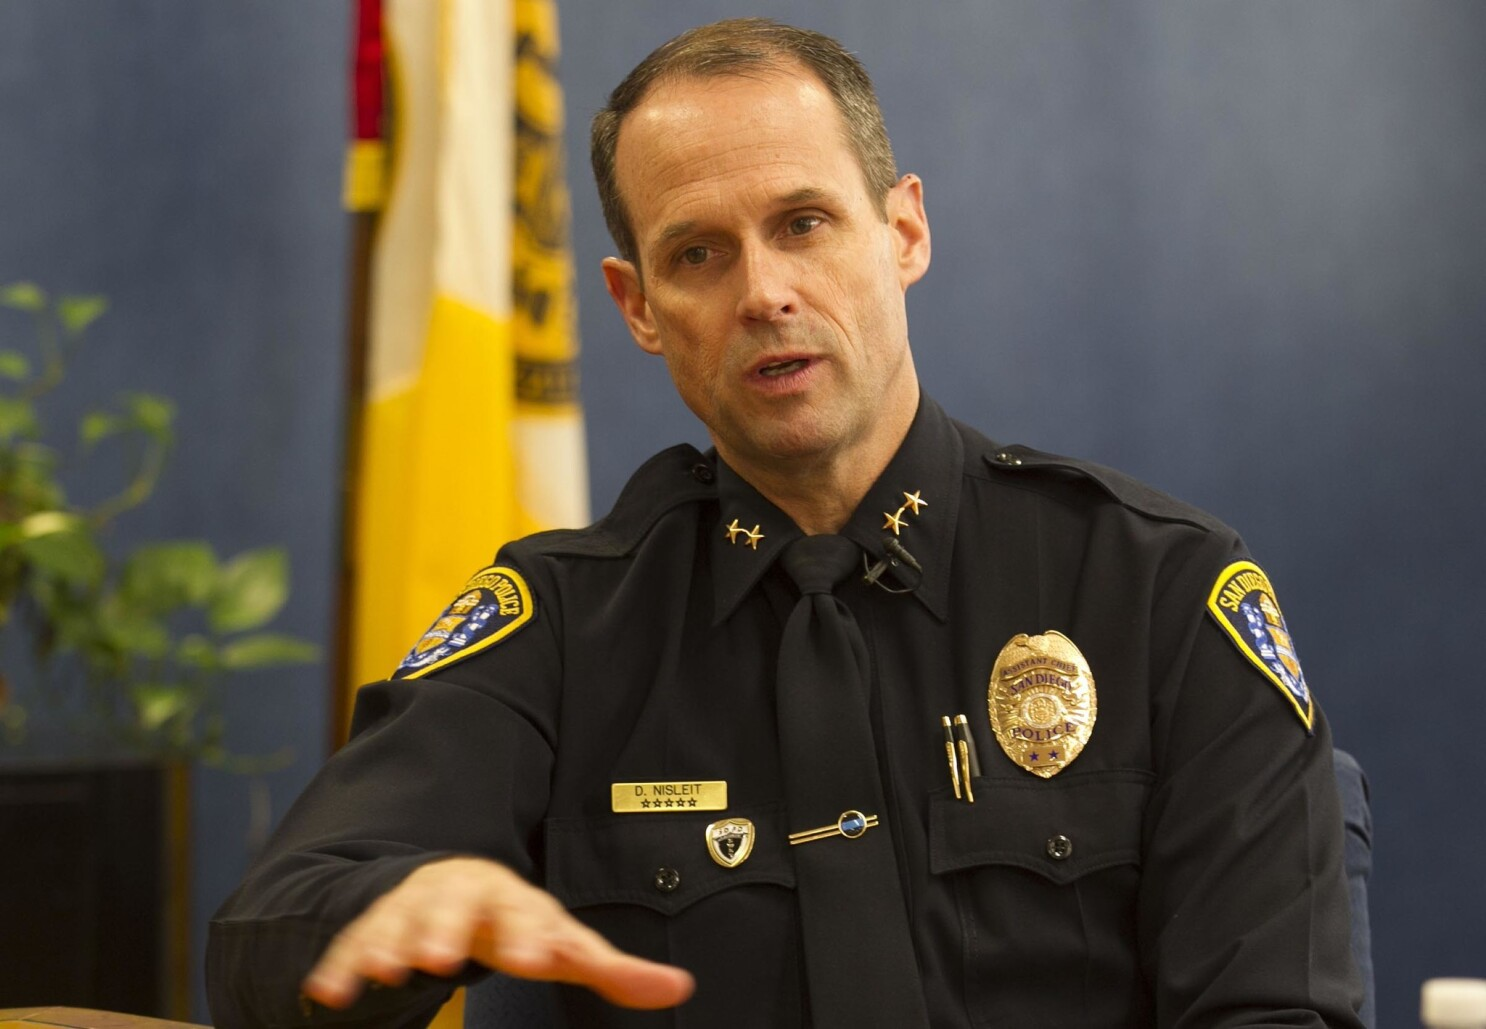 San Diego launching homebuying incentive to help with police officer shortage